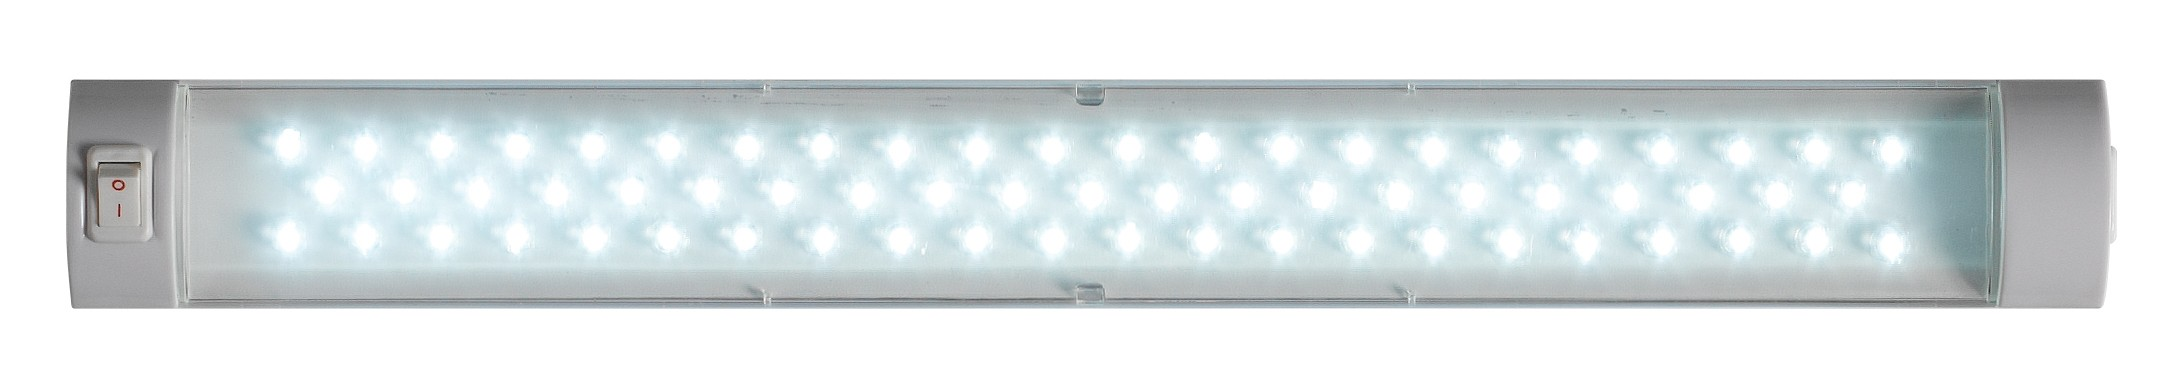 LED switched strip light with integral driver white